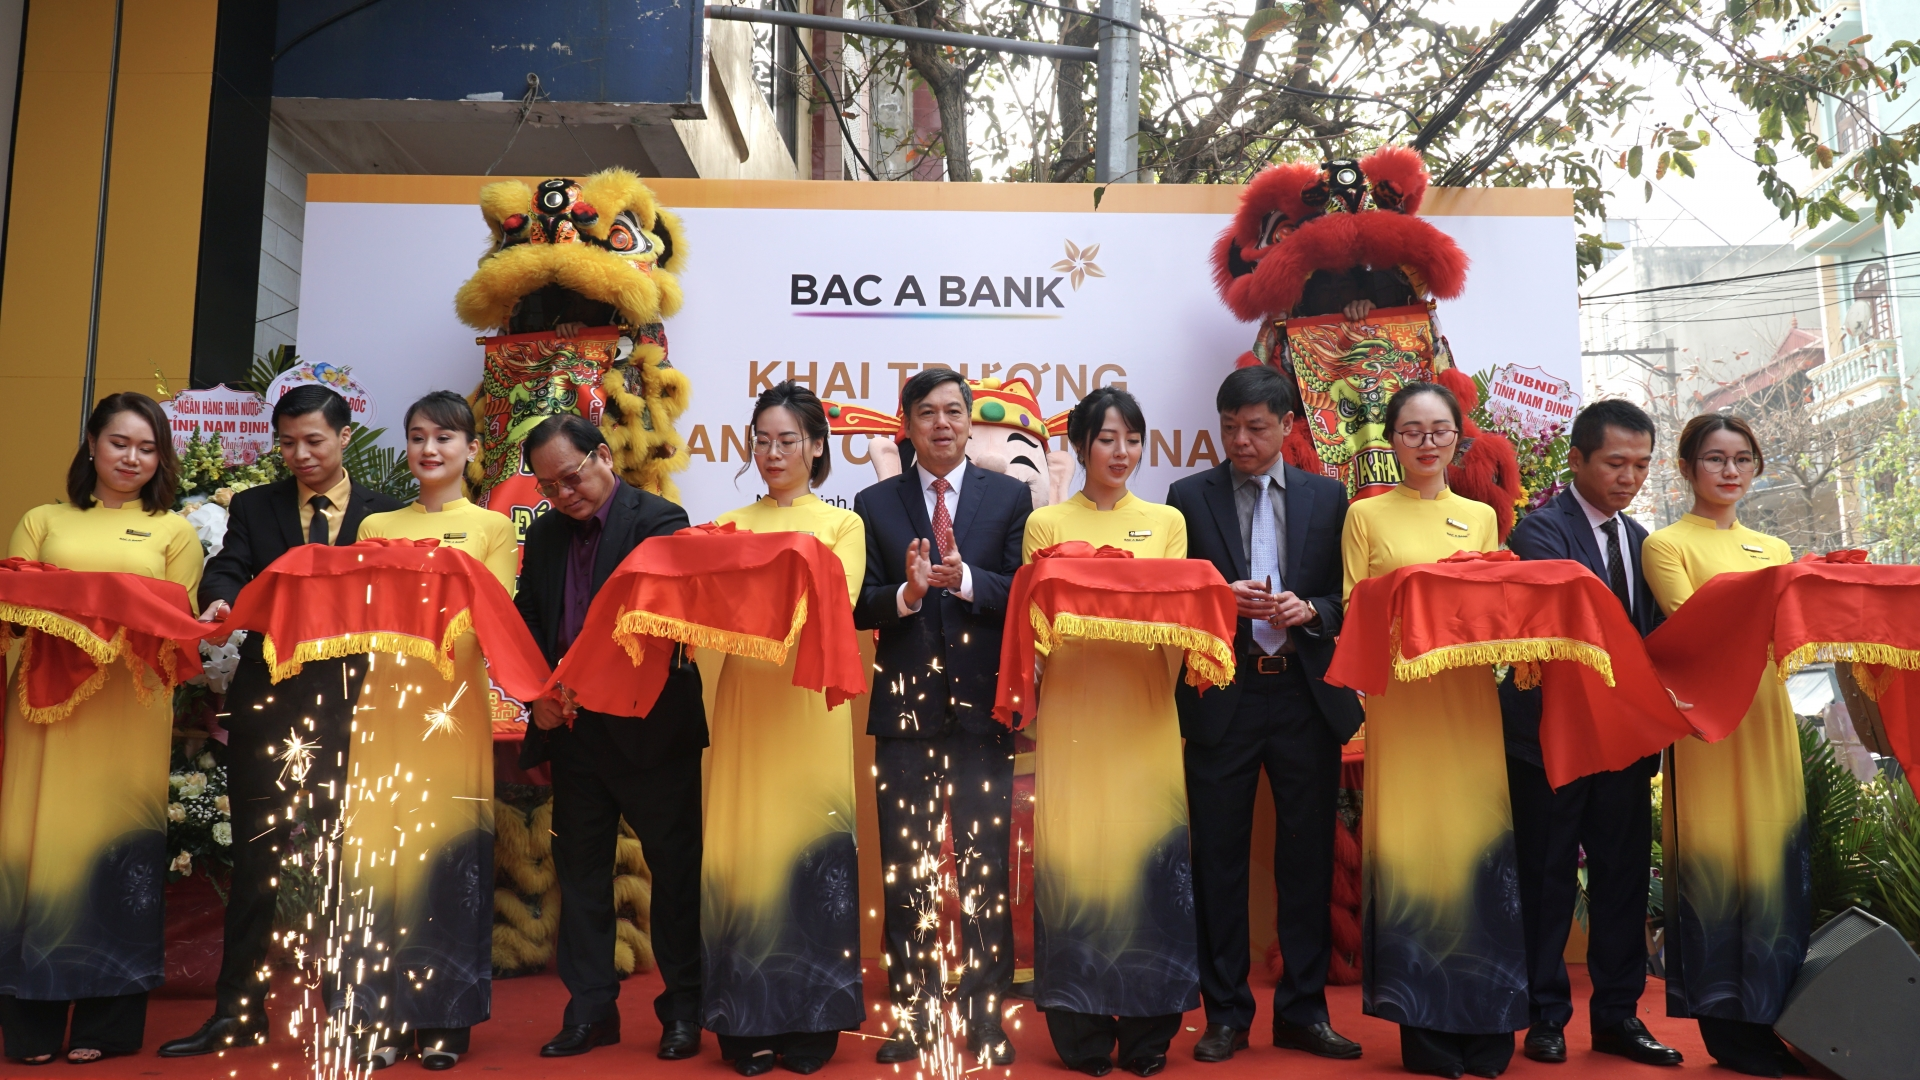 BAC A BANK launches new branch in Nam Dinh